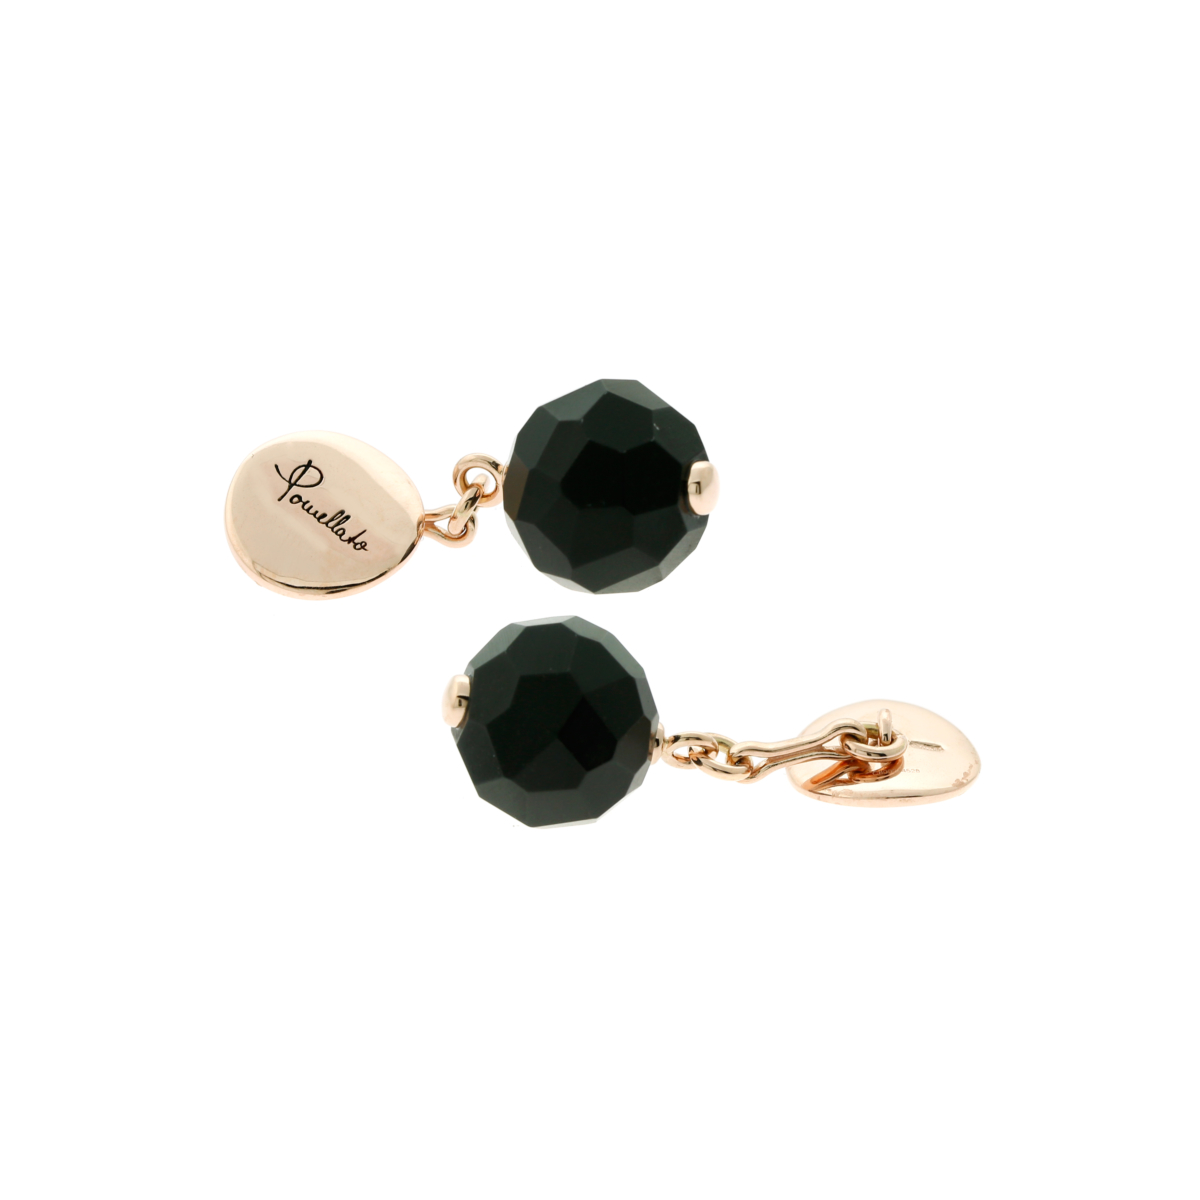 Pomellato Rose Gold Cuff Links